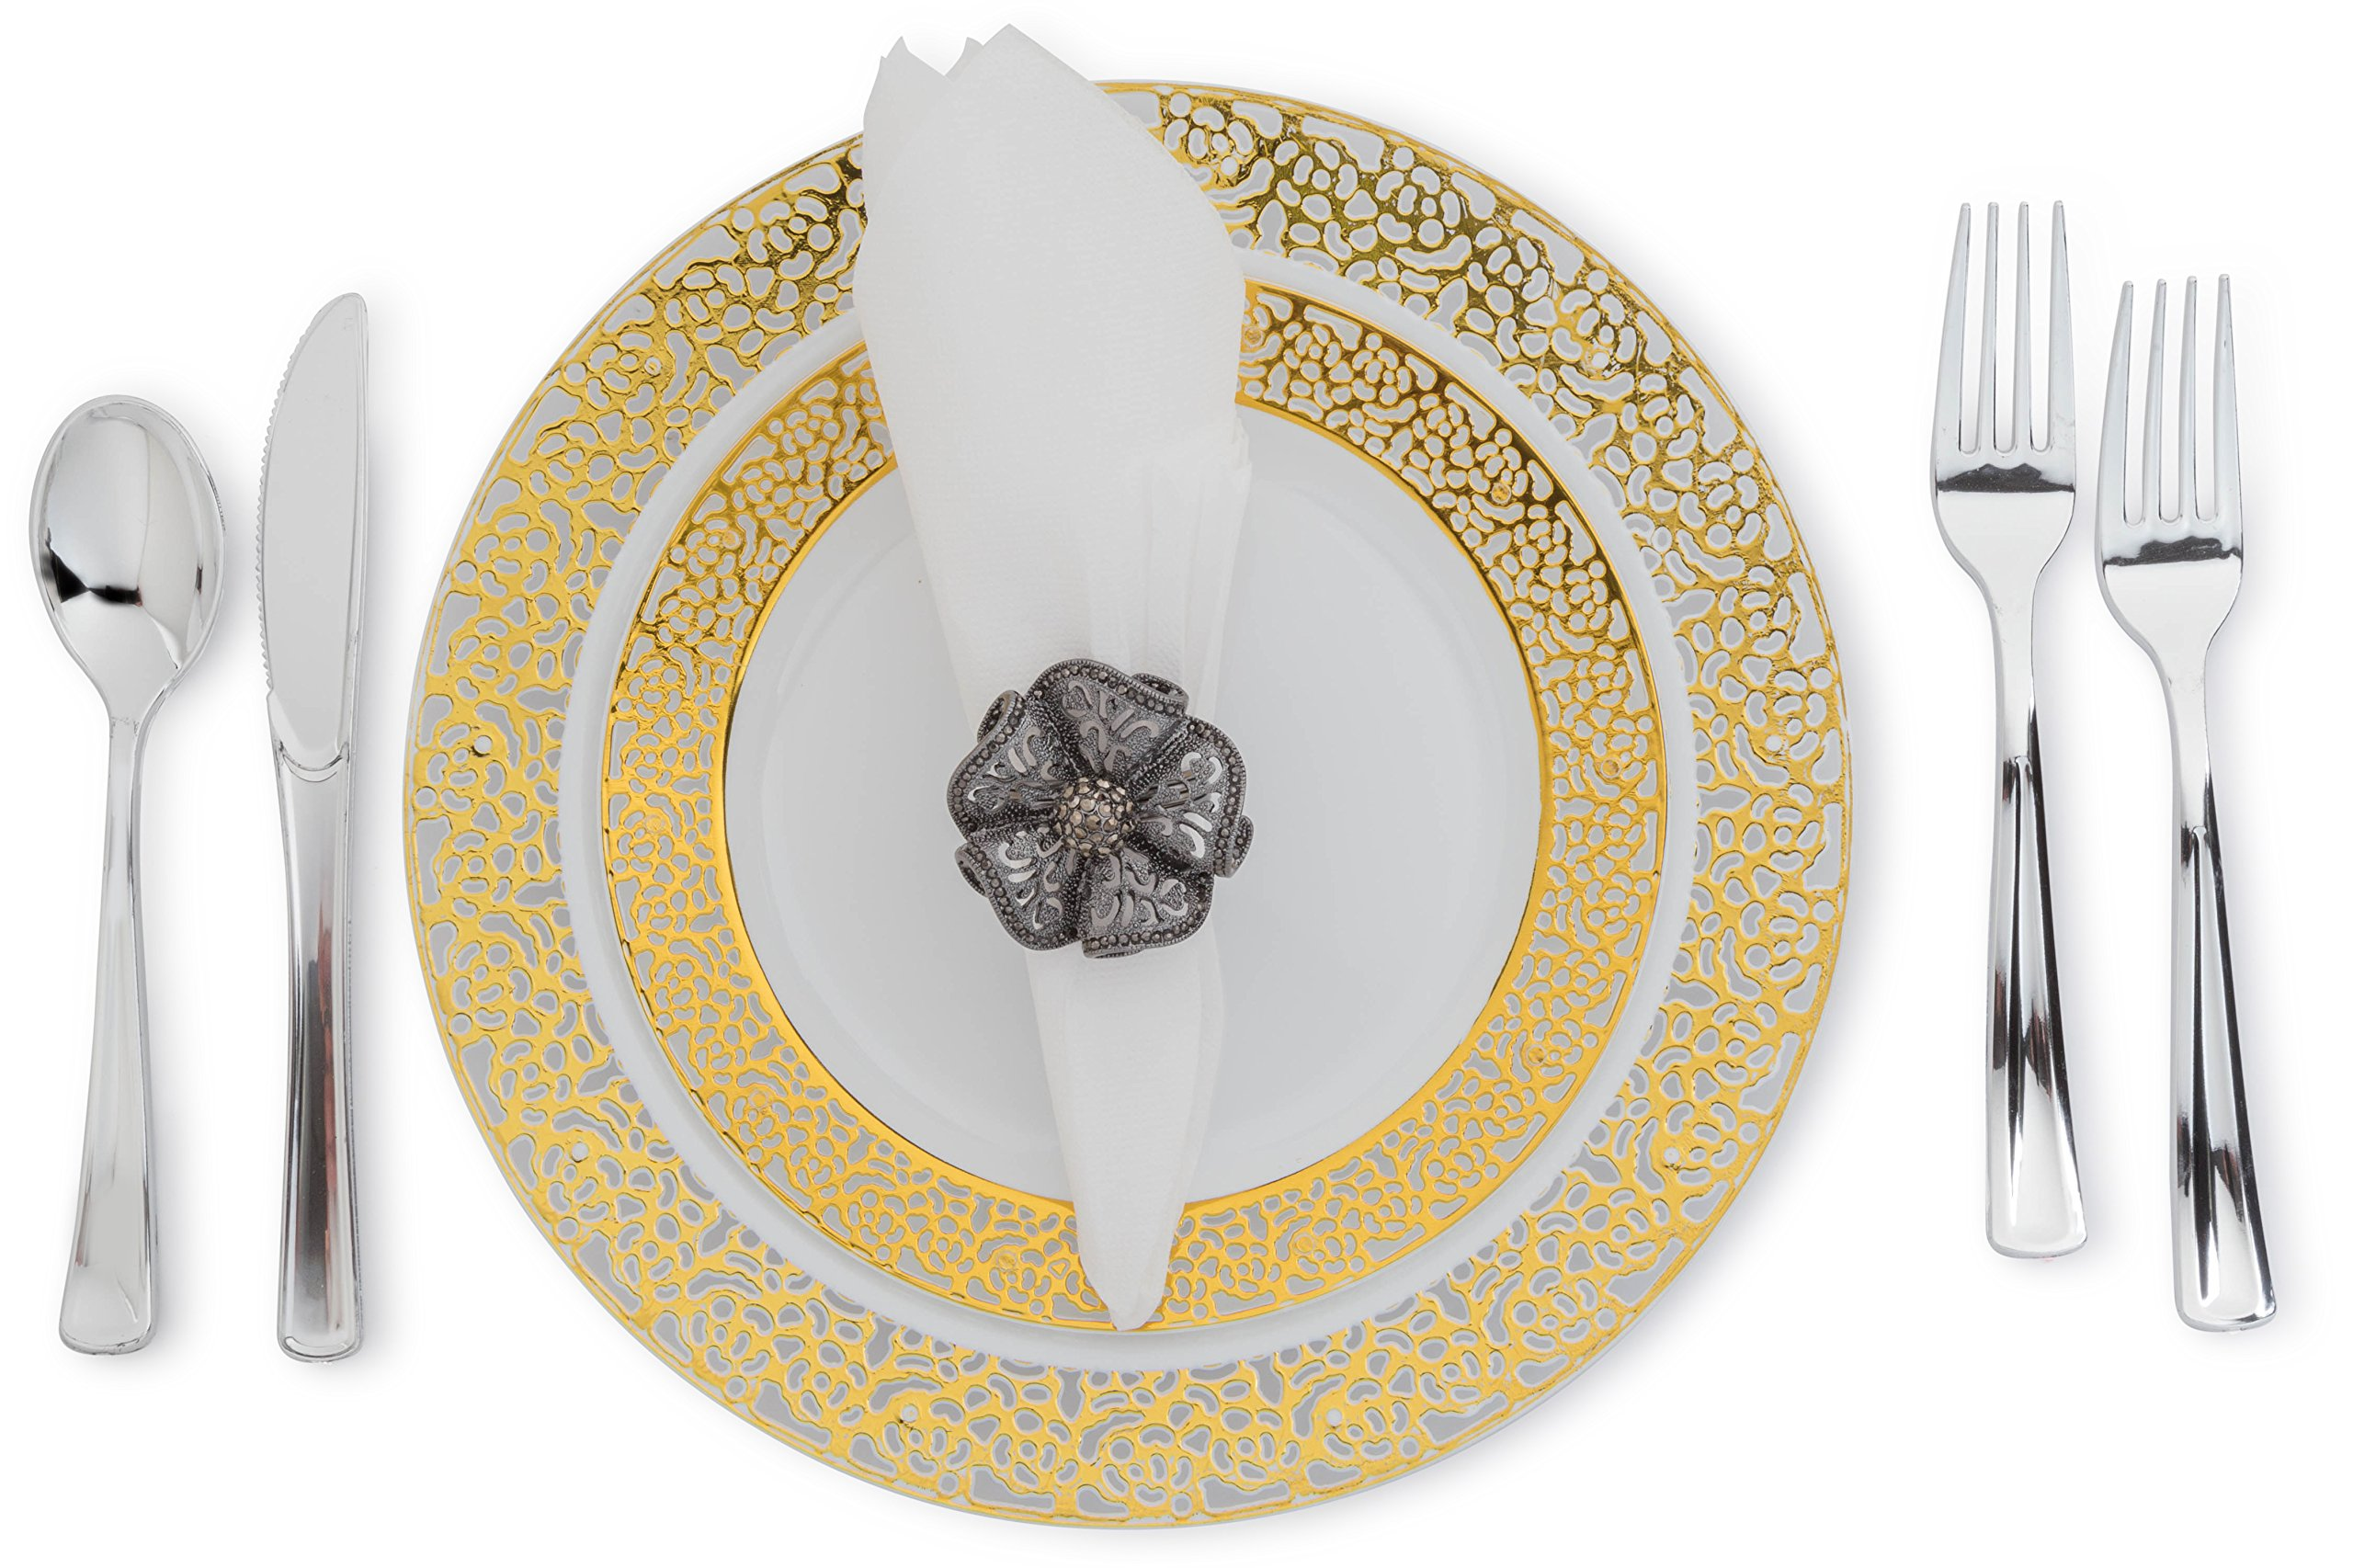 Posh Setting White/Gold Lace Collection Plates, Cutlery, Napkins Combo Pack Servings for 80 People Elegant Disposable Dinnerware. Great for Weddings, Parties.